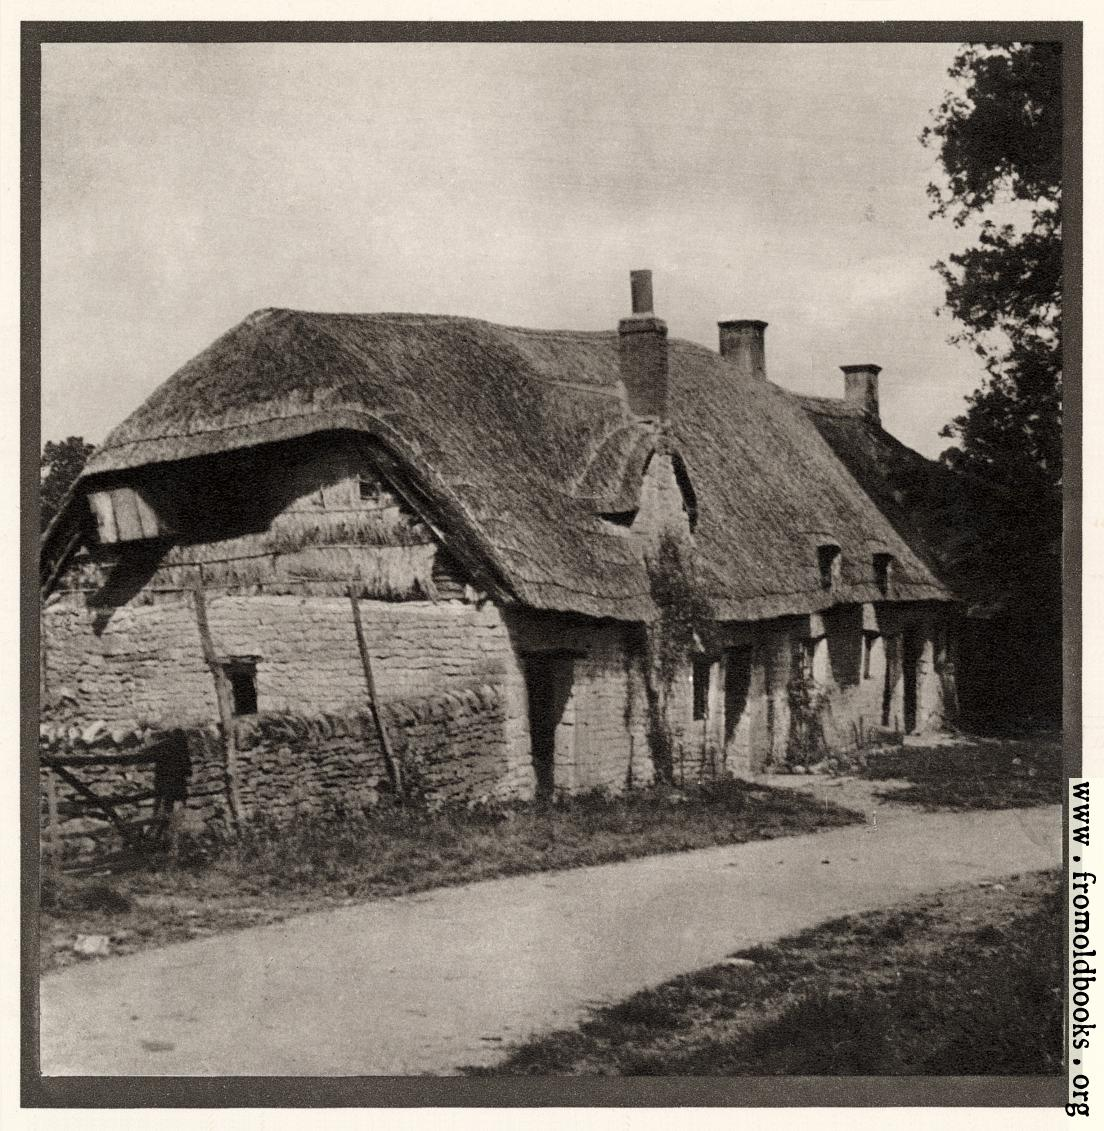 [Picture: Chipping Campden, Old Cottages]